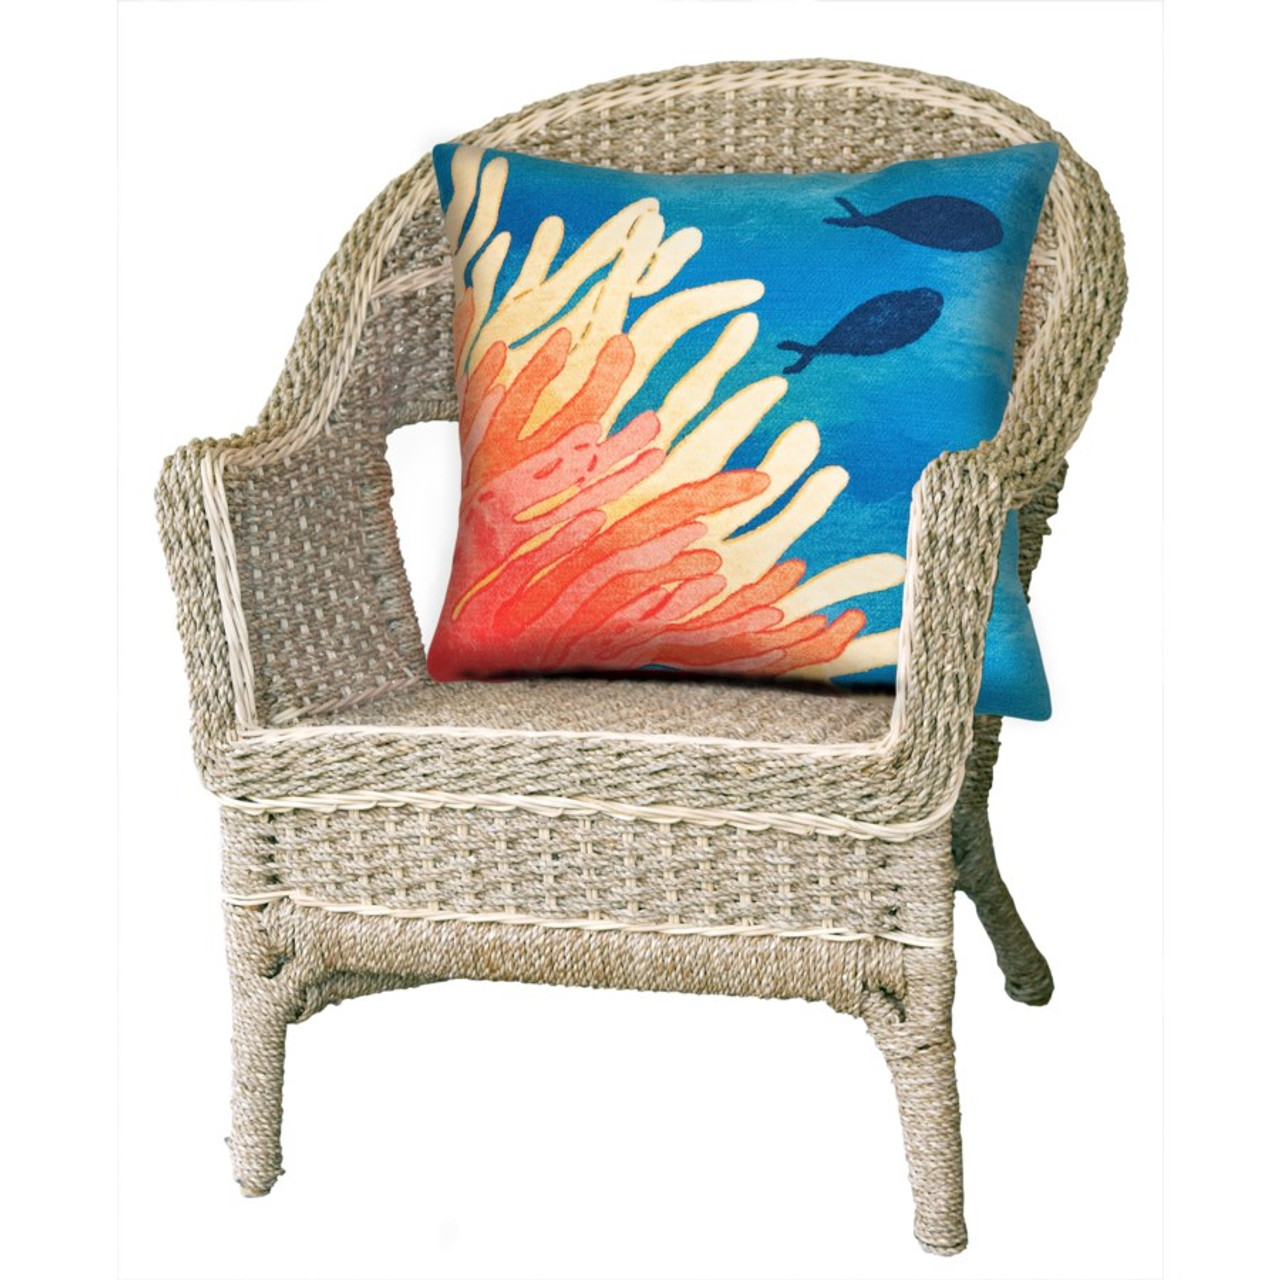 Visions Reef & Fish Indoor/Outdoor Throw Pillow - Square Lifestyle